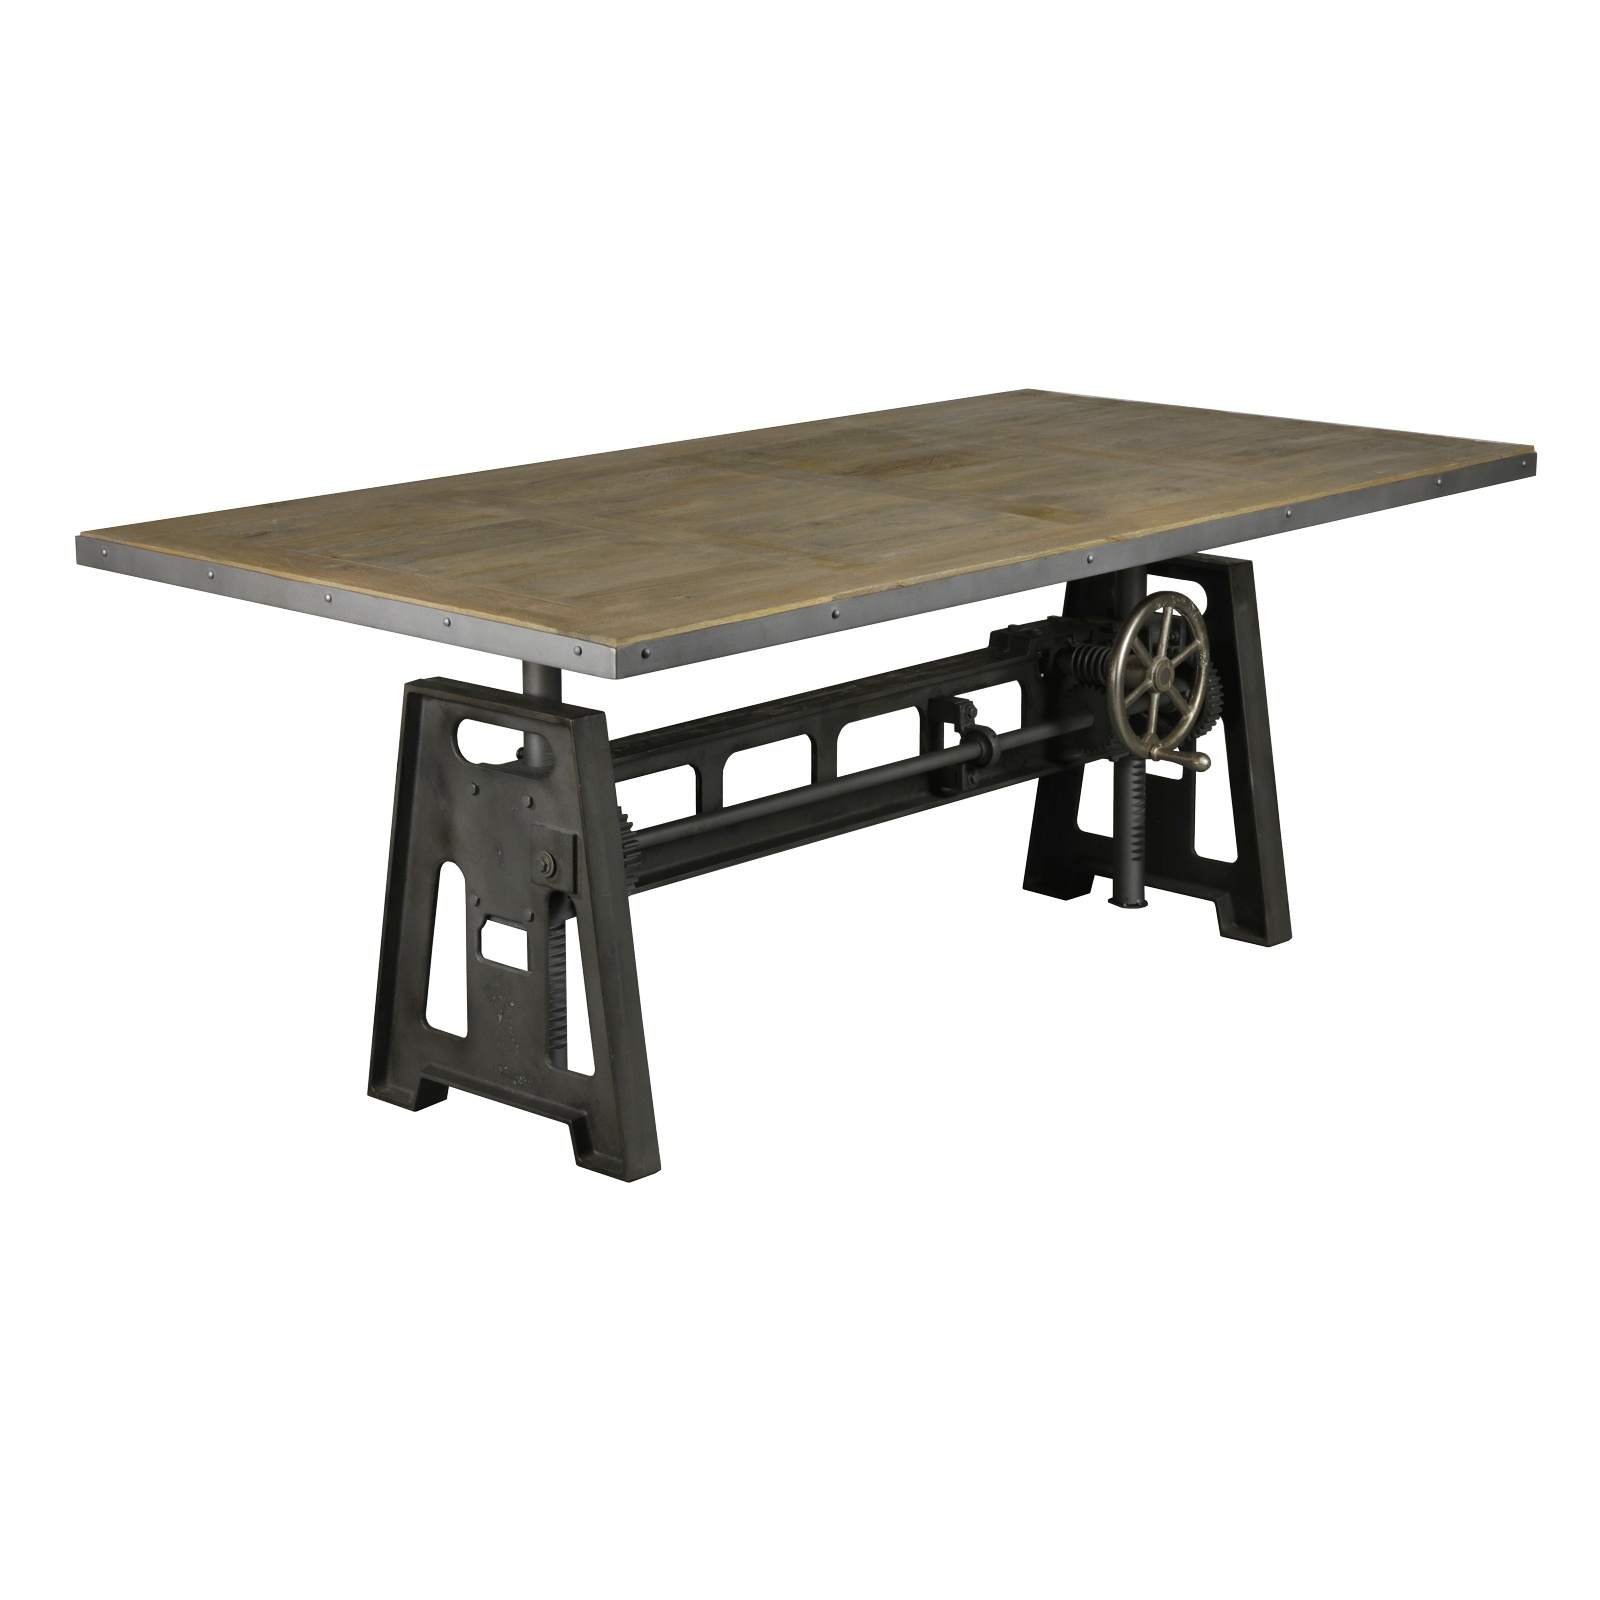 table industrielle manivelle 2m le d p t des docks. Black Bedroom Furniture Sets. Home Design Ideas